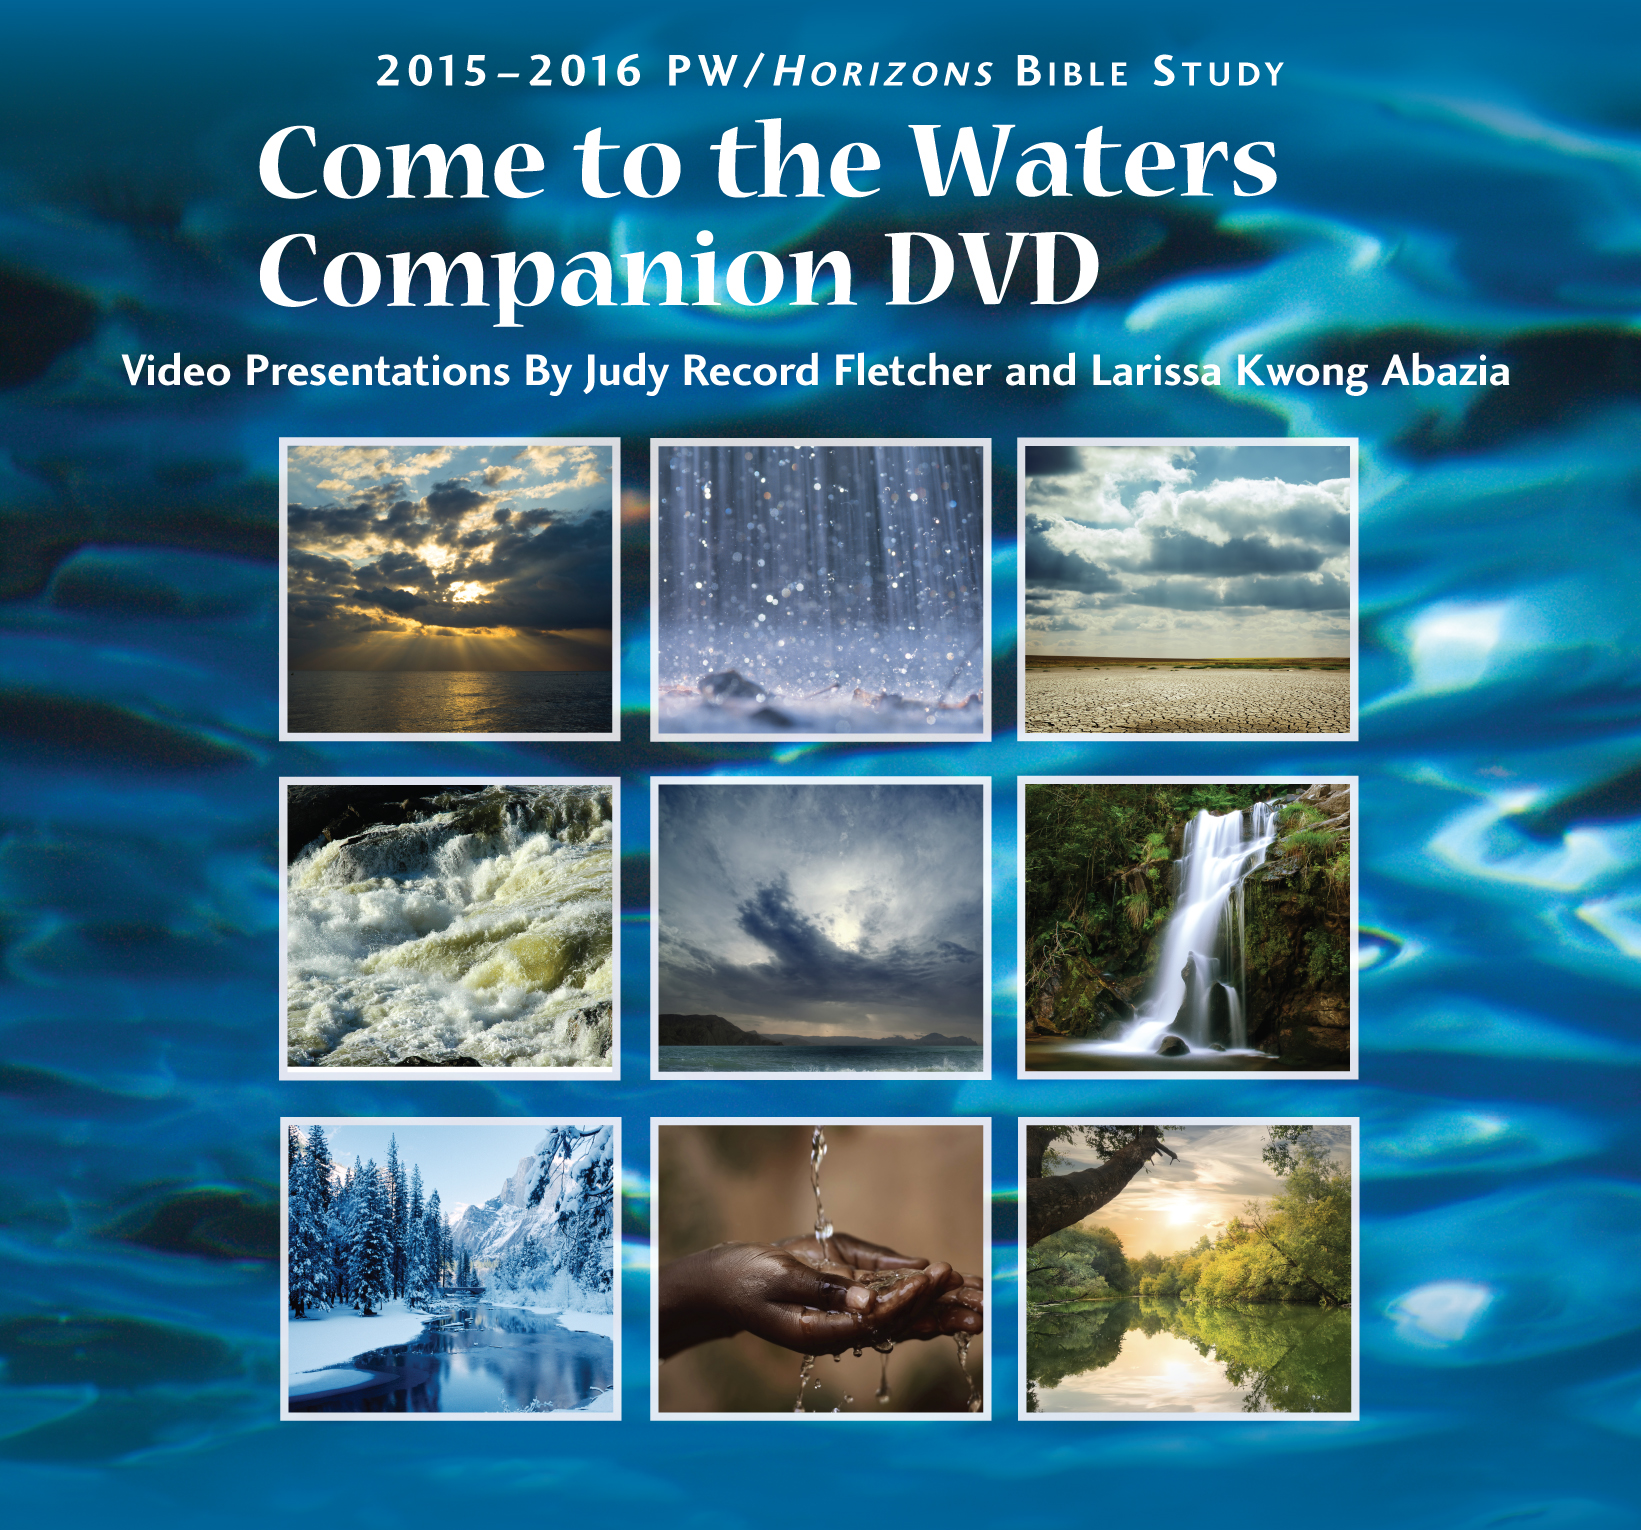 Come to the Waters Companion DVD